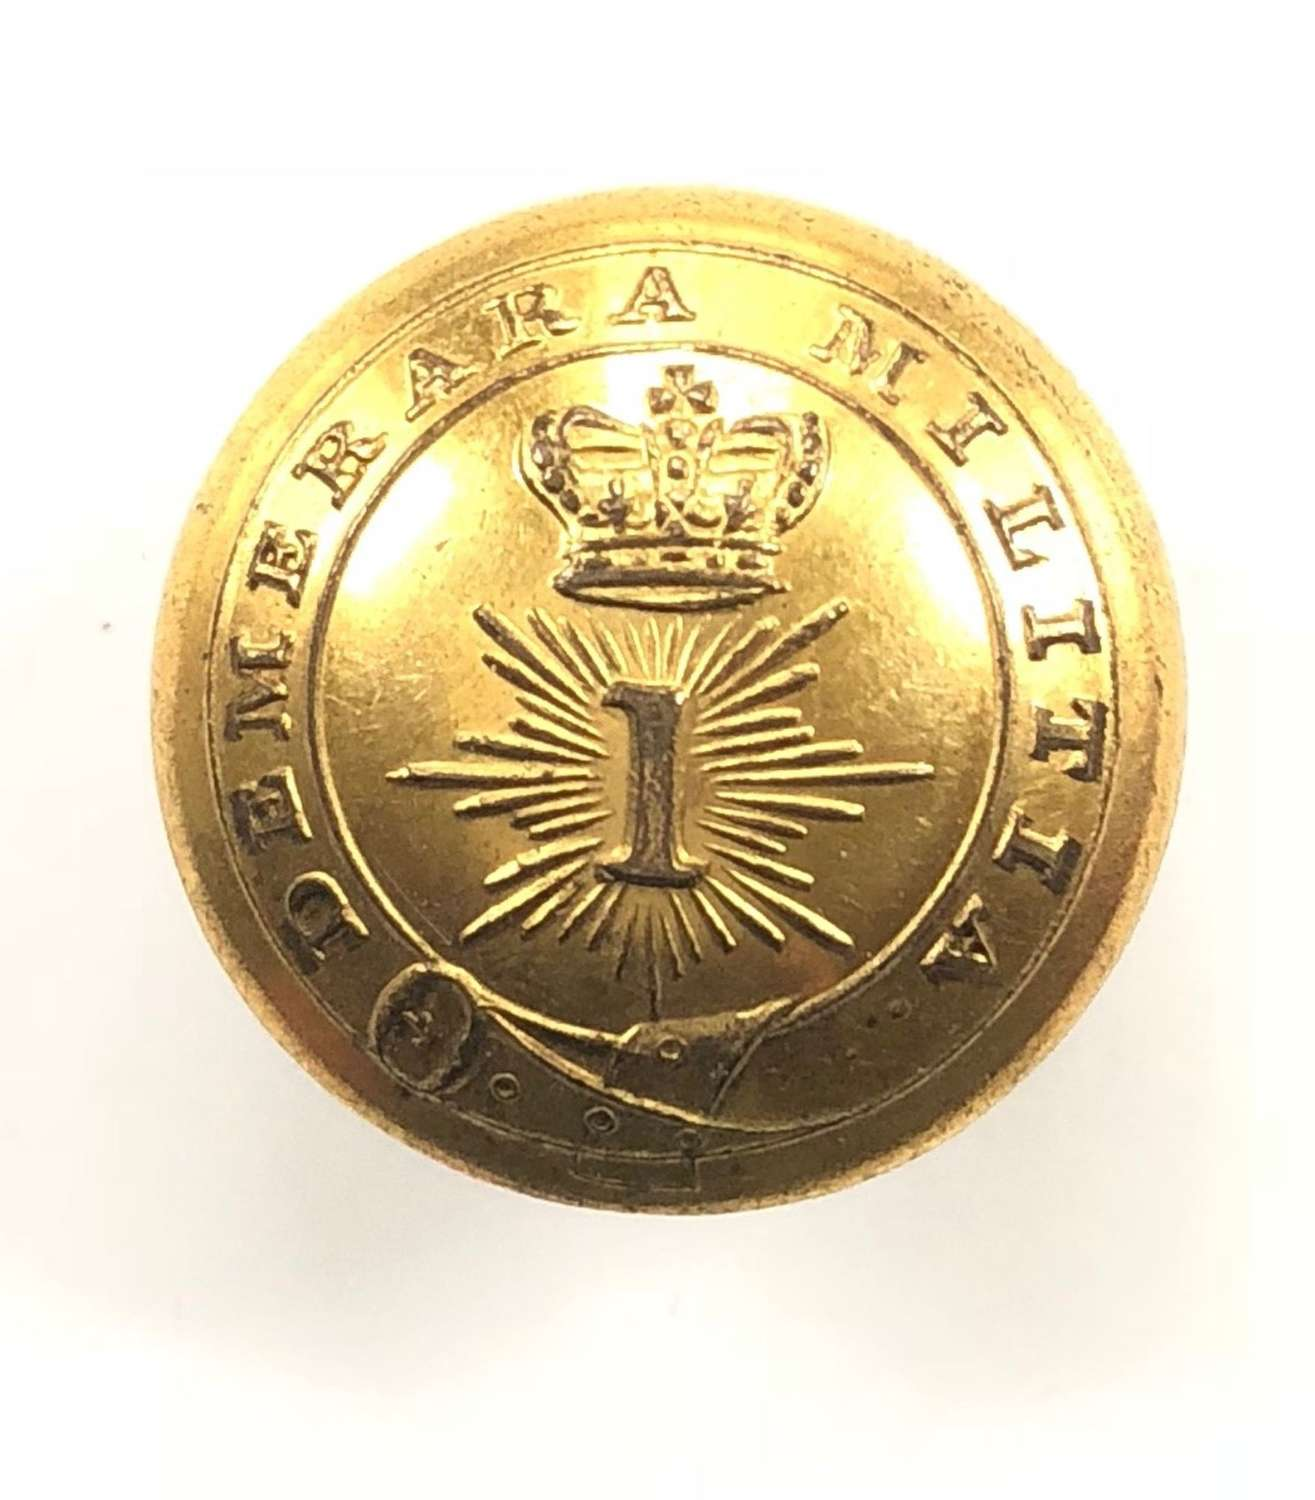 British Guiana. 1st Demerara Militia gilt open-bach coatee button